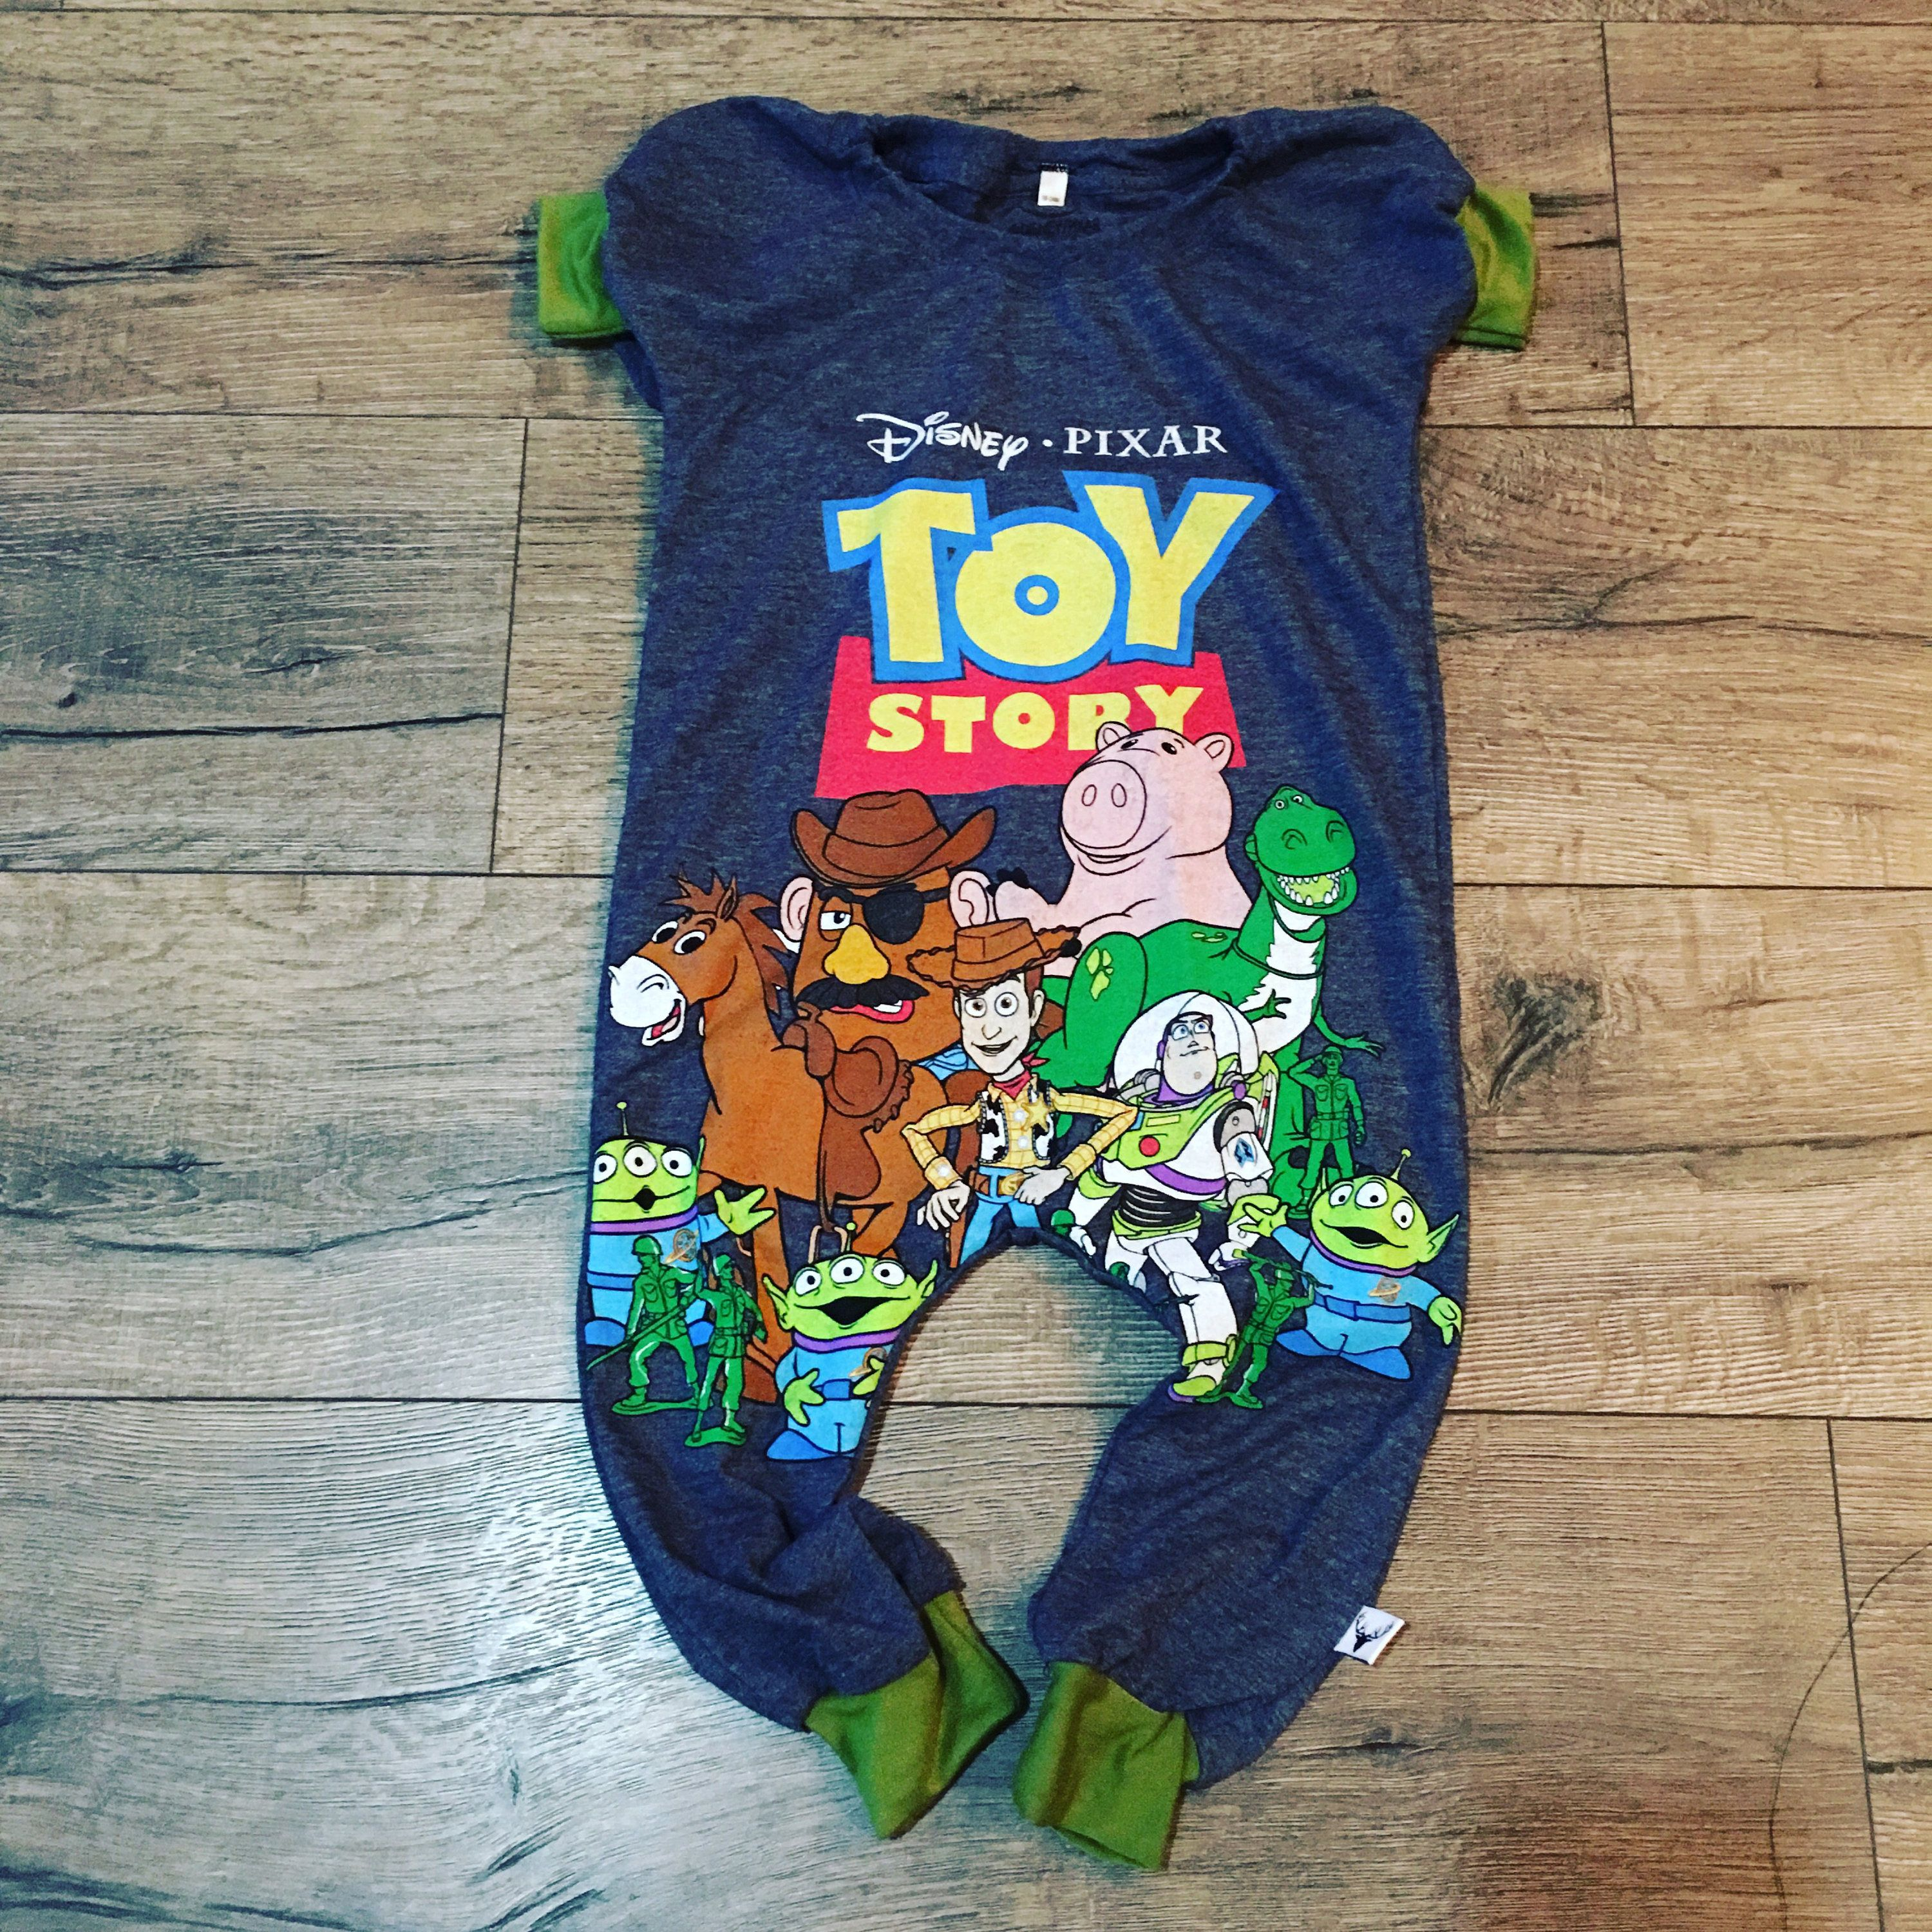 Toy story baby romper handmade baby bodysuit baby bodysuit toy story baby romper handmade baby bodysuit baby bodysuit custom baby gift trendy toddler clothes disney t shirt romper woody negle Choice Image